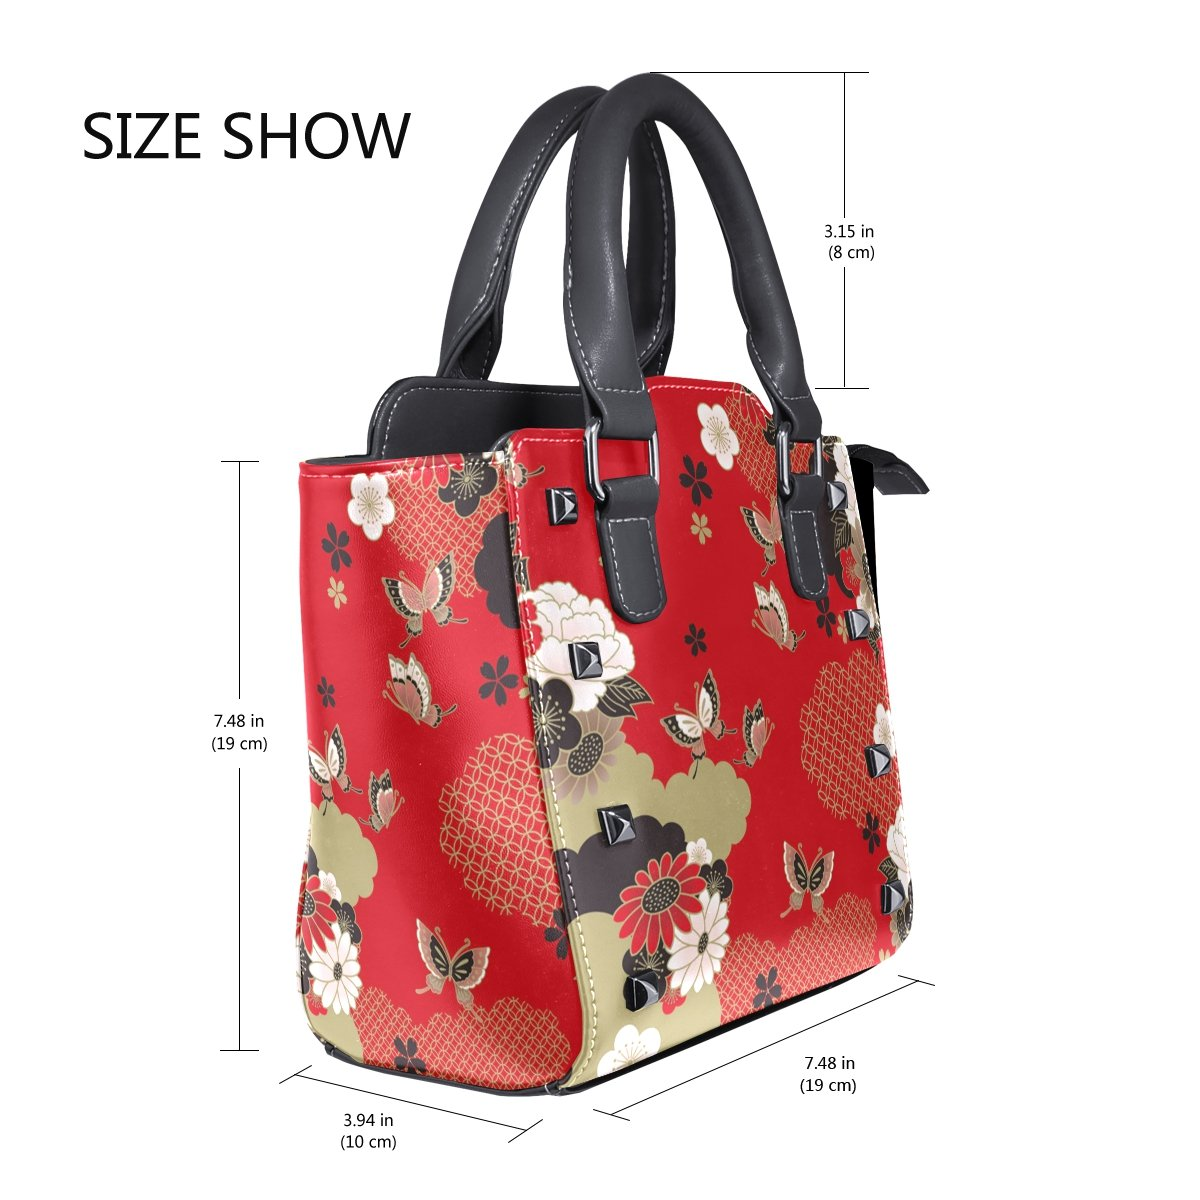 Jennifer PU Leather Top-Handle Handbags Red Japanese Floral Style Single-Shoulder Tote Crossbody Bag Messenger Bags For Women